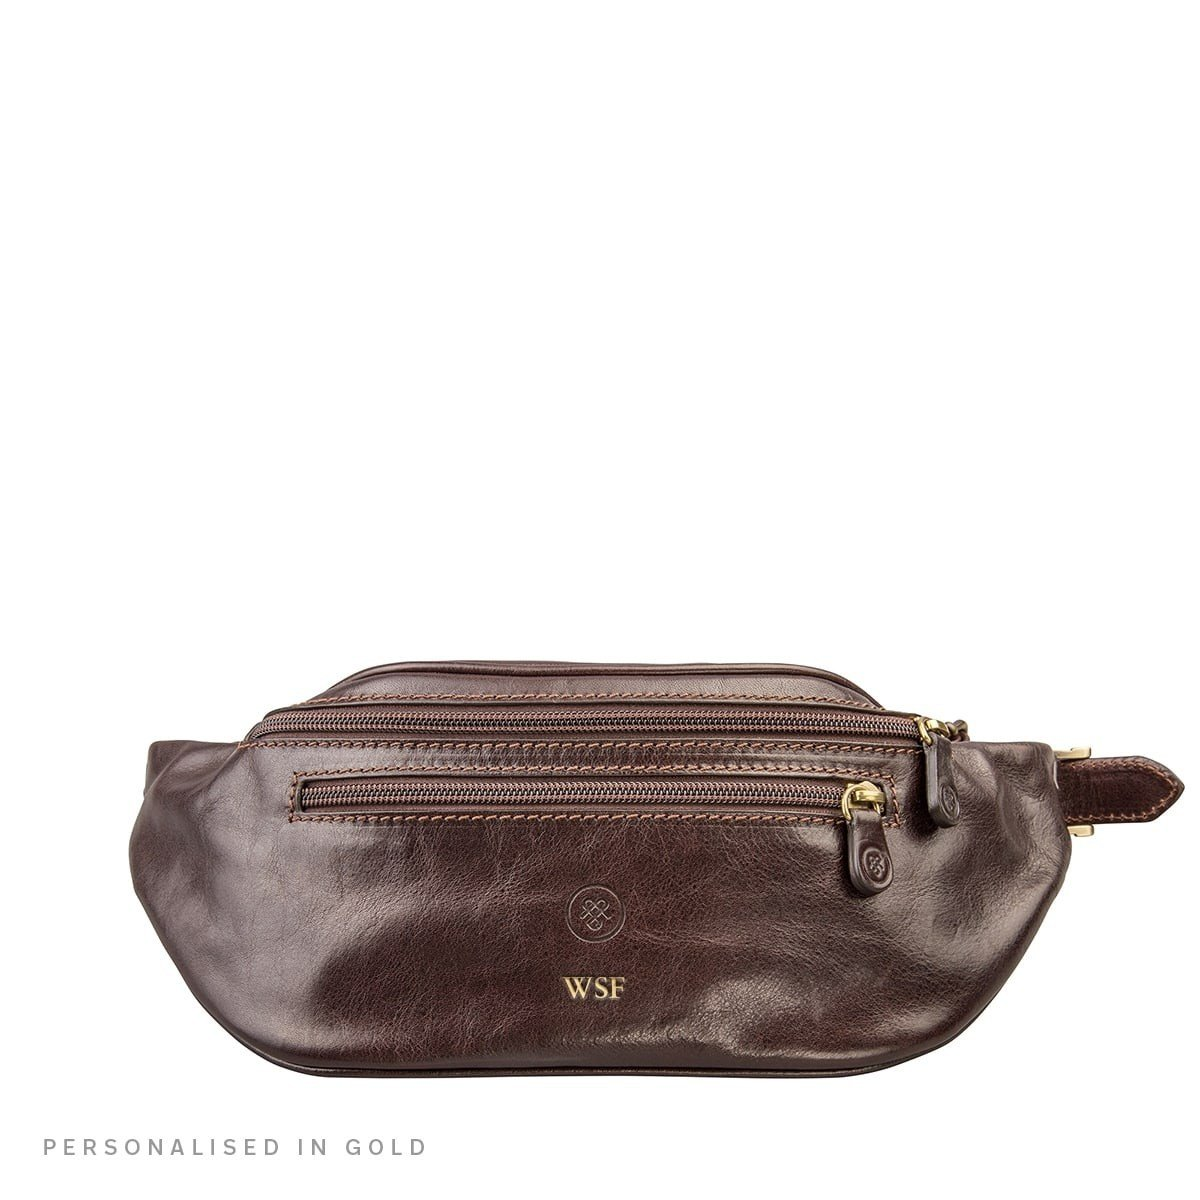 Maxwell Scott Personalized Quality Leather Bum Bag (Centolla)